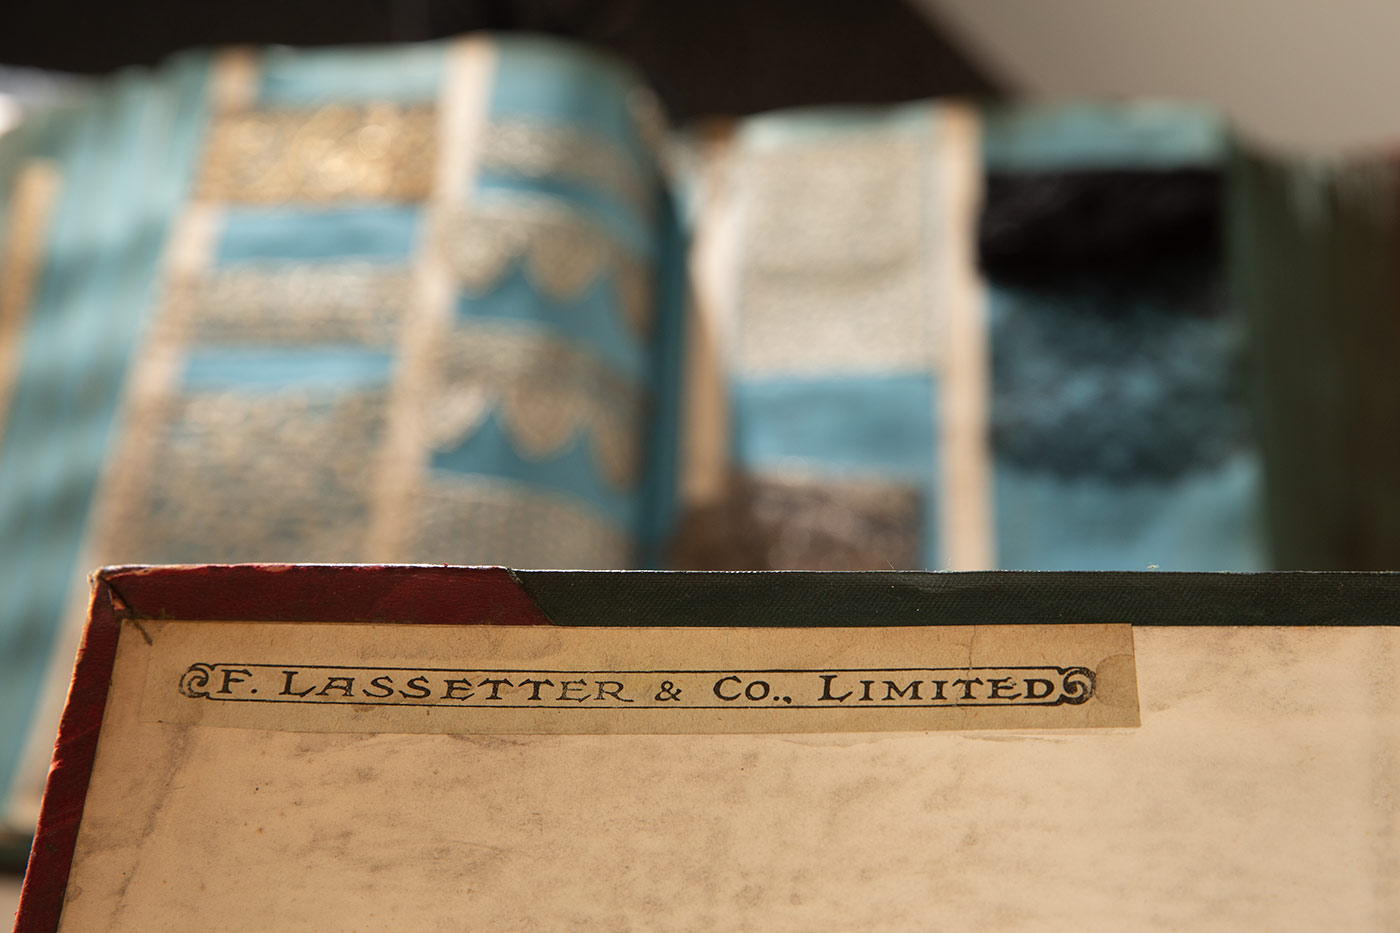 Colour photograph of a storage box with a label printed with the text: F. LASSETTER & CO., LIMITED. There is a blurred image in the background of textile samples. - click to view larger image